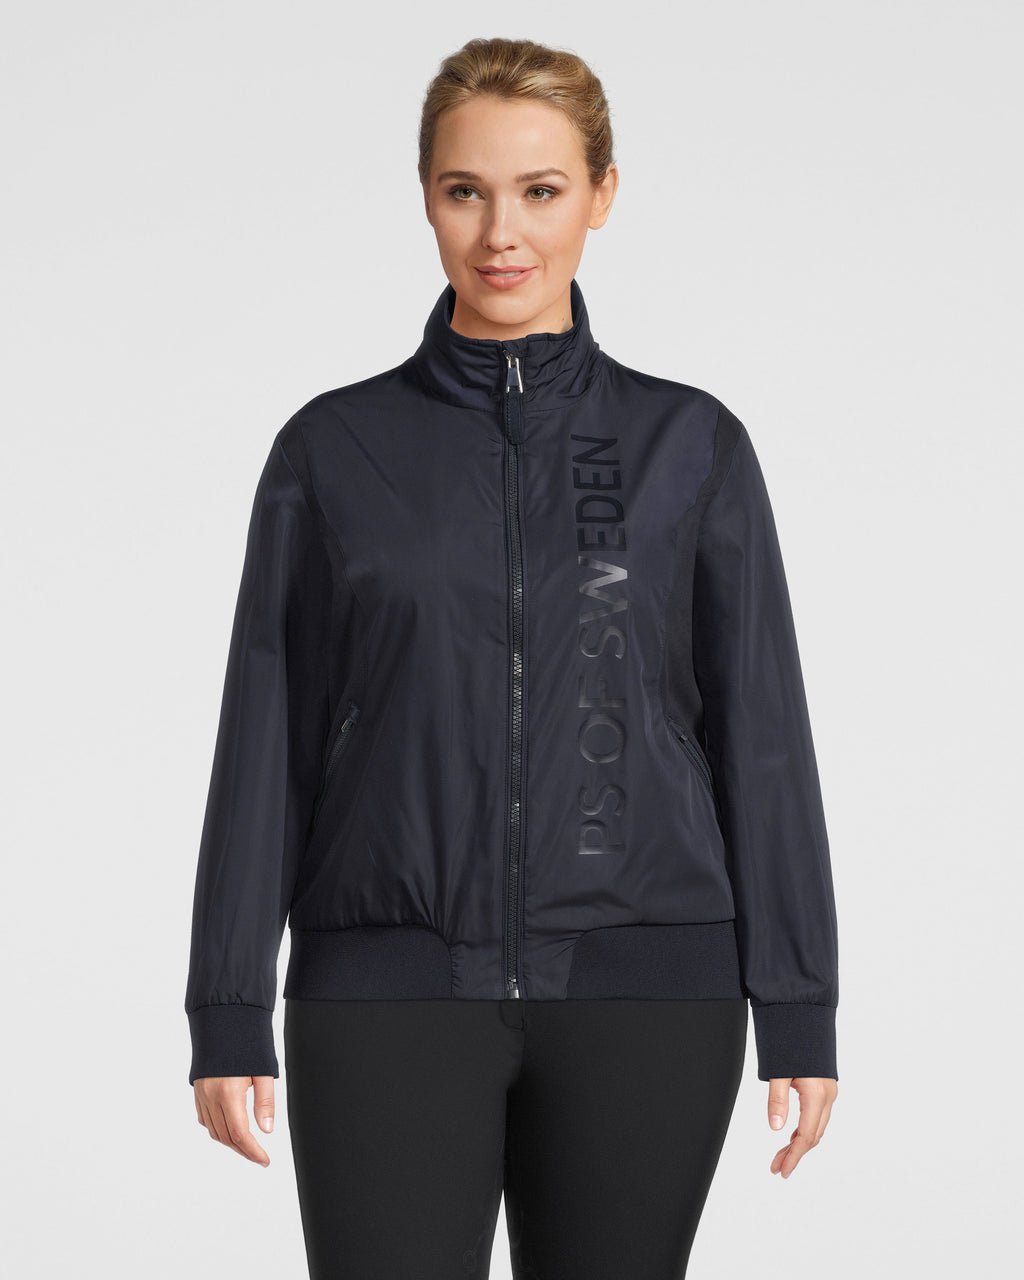 PS of Sweden Wera Jacket